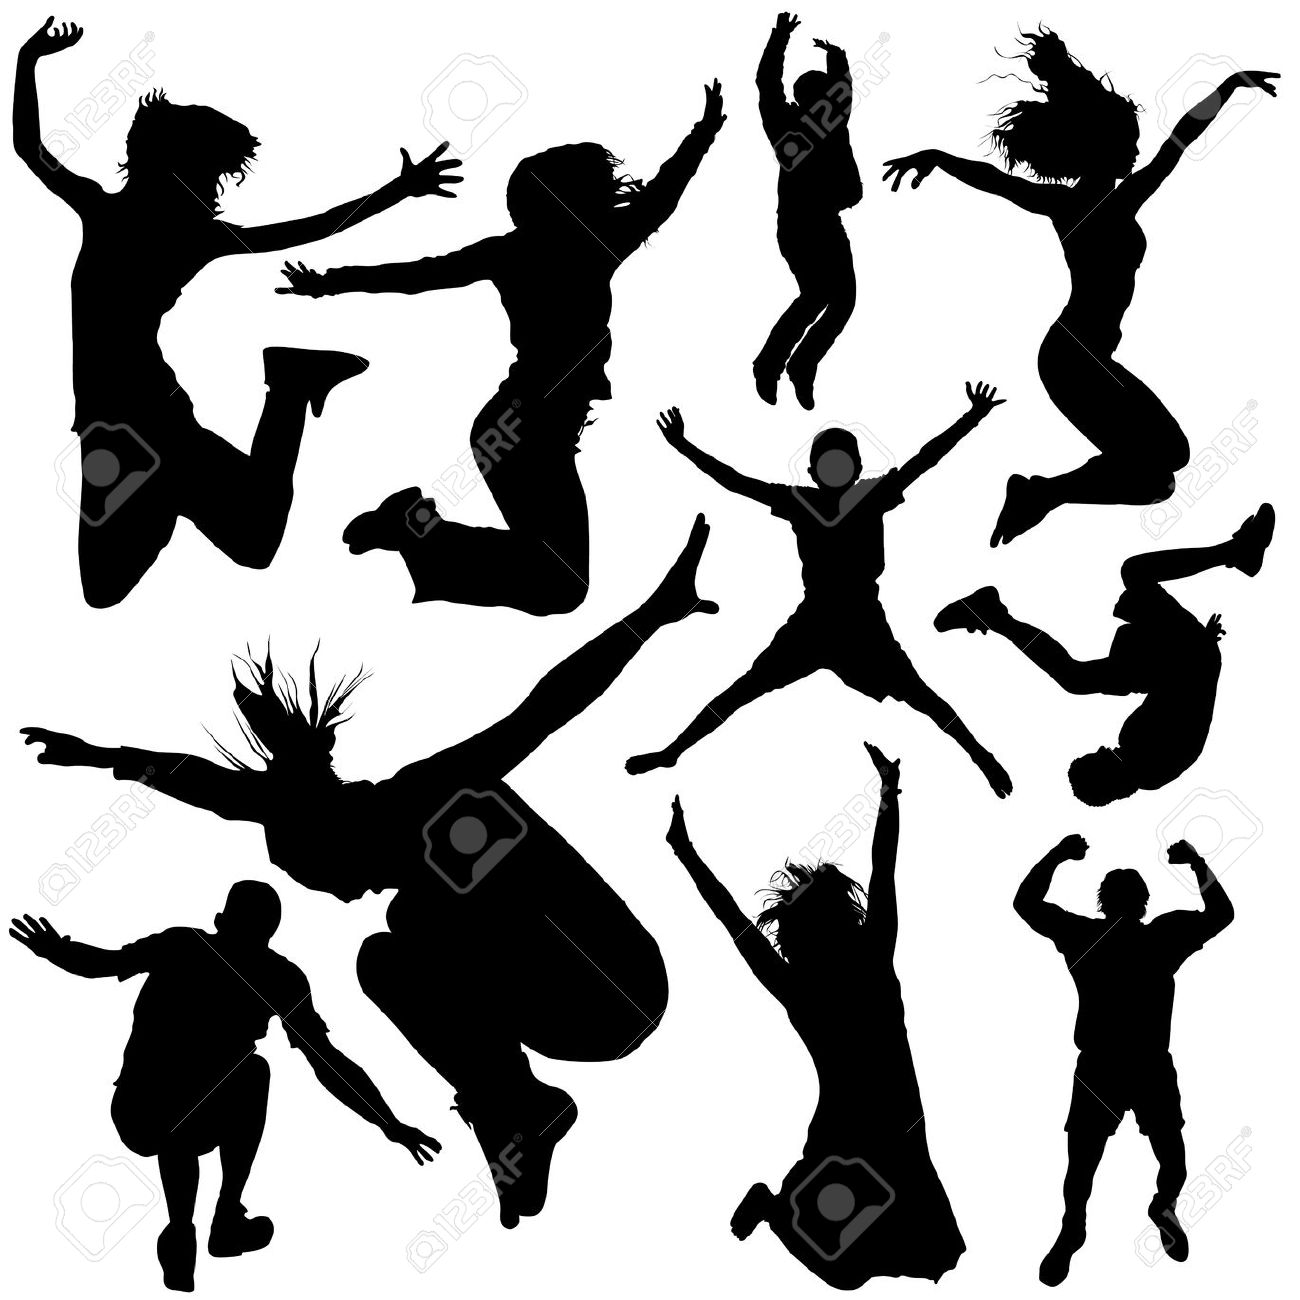 Jumping People Royalty Free Cliparts, Vectors, And Stock.